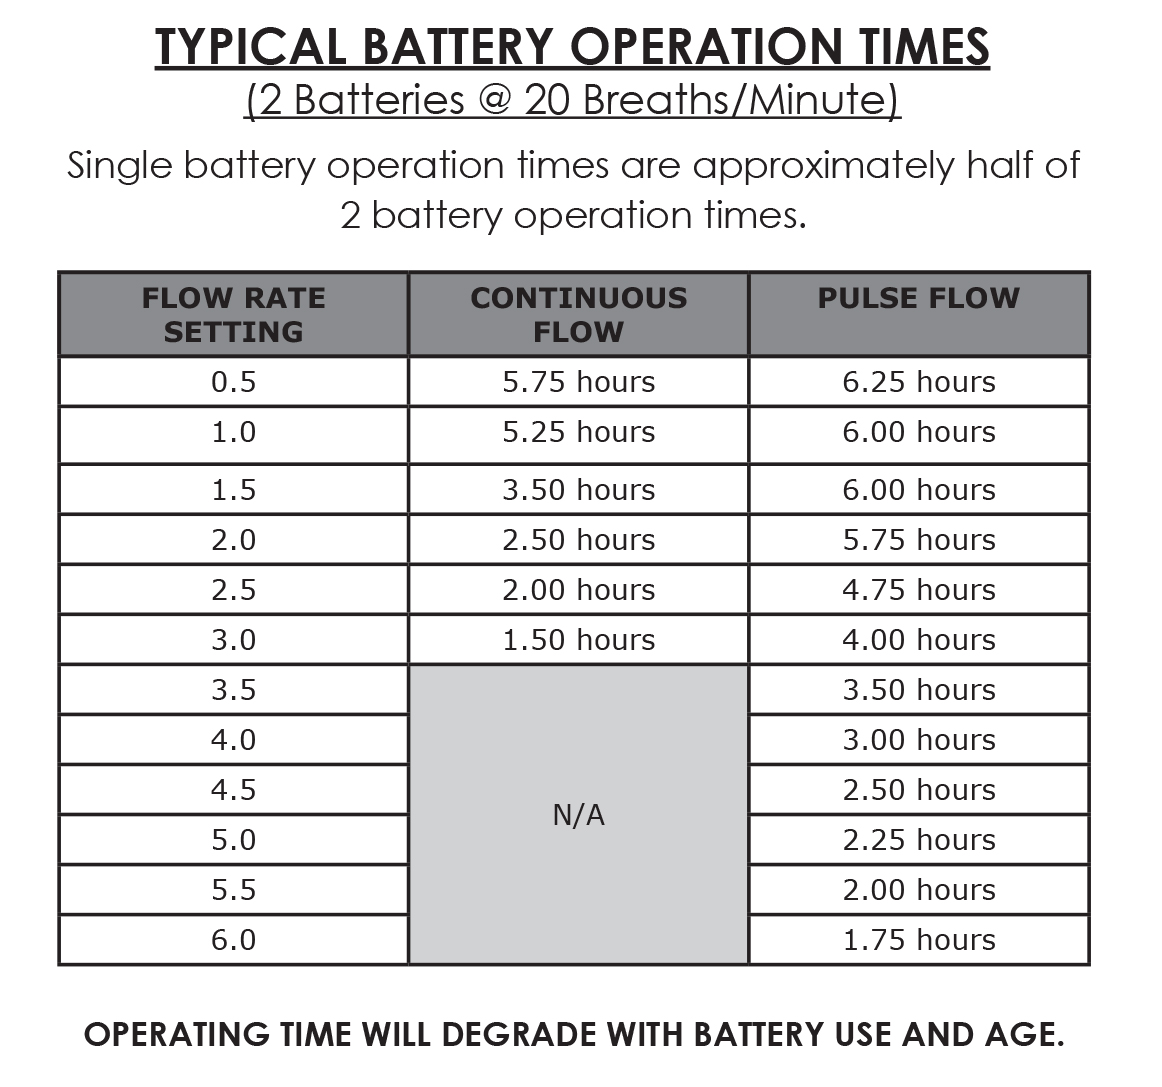 battery-run-times-oxlife-independence.jpg